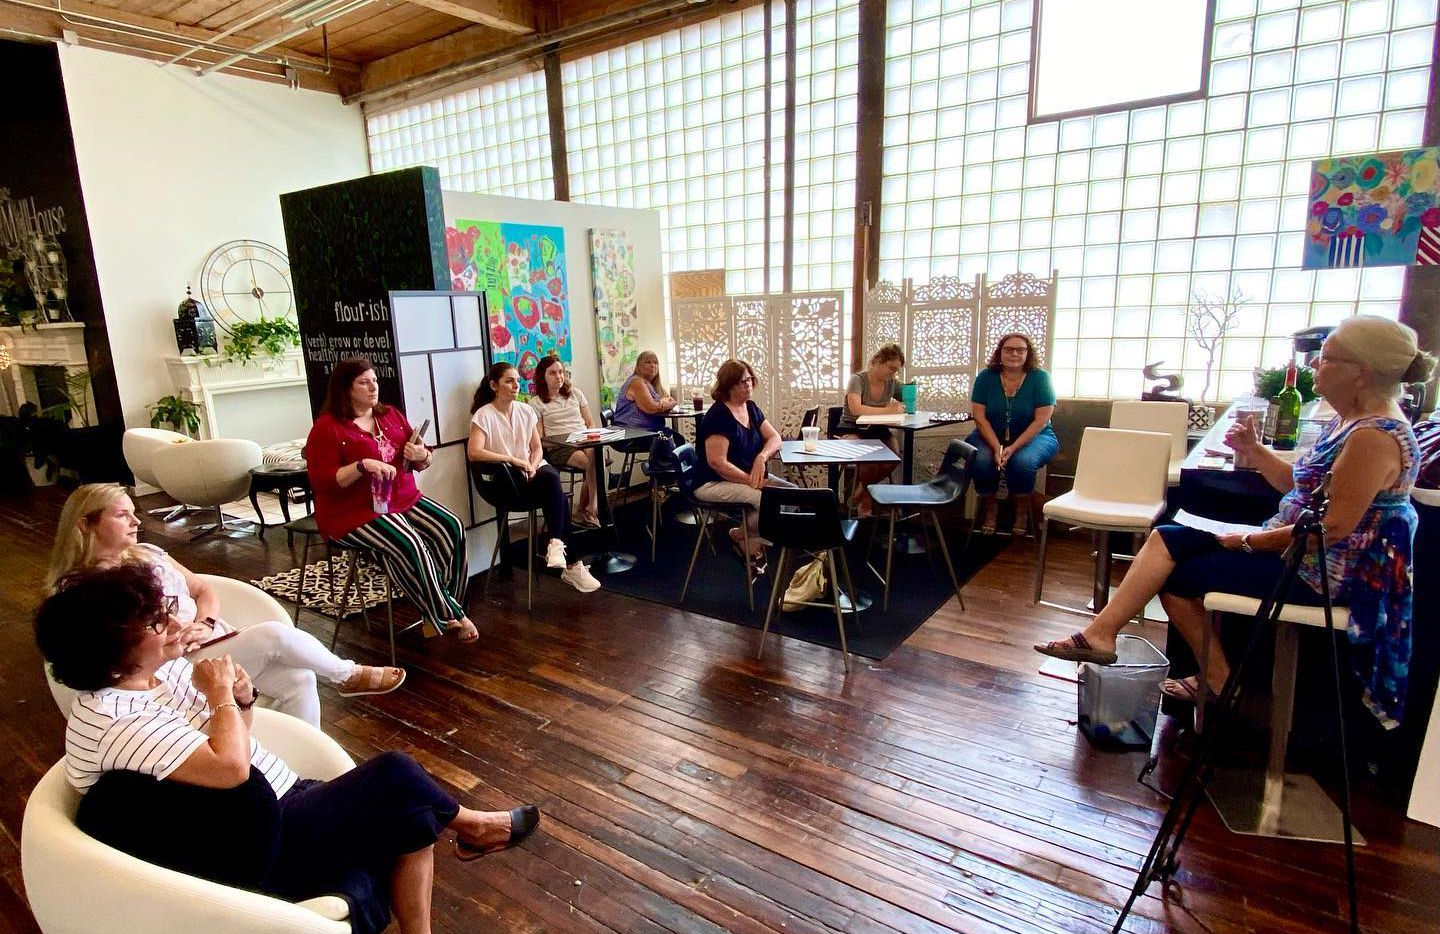 MillHouse in McKinney, a nonprofit that offers co-working spaces for women, is holding its Summer Art Fest this weekend at the Cotton Mill.